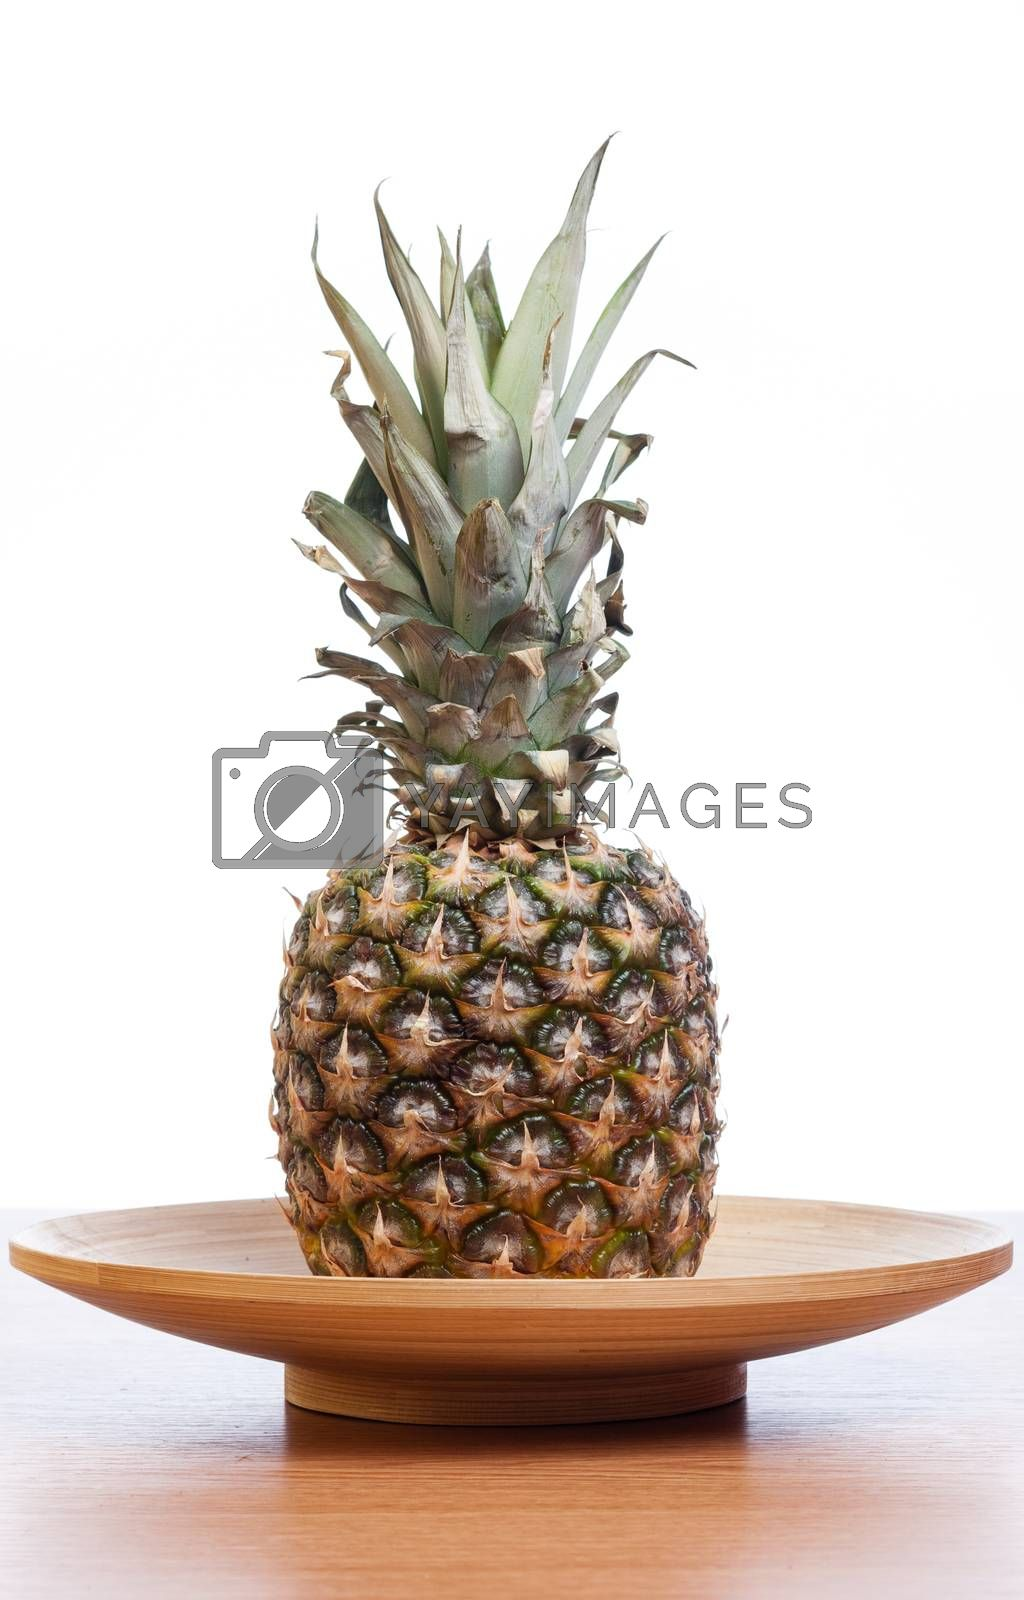 Royalty free image of pineapple by furo_felix